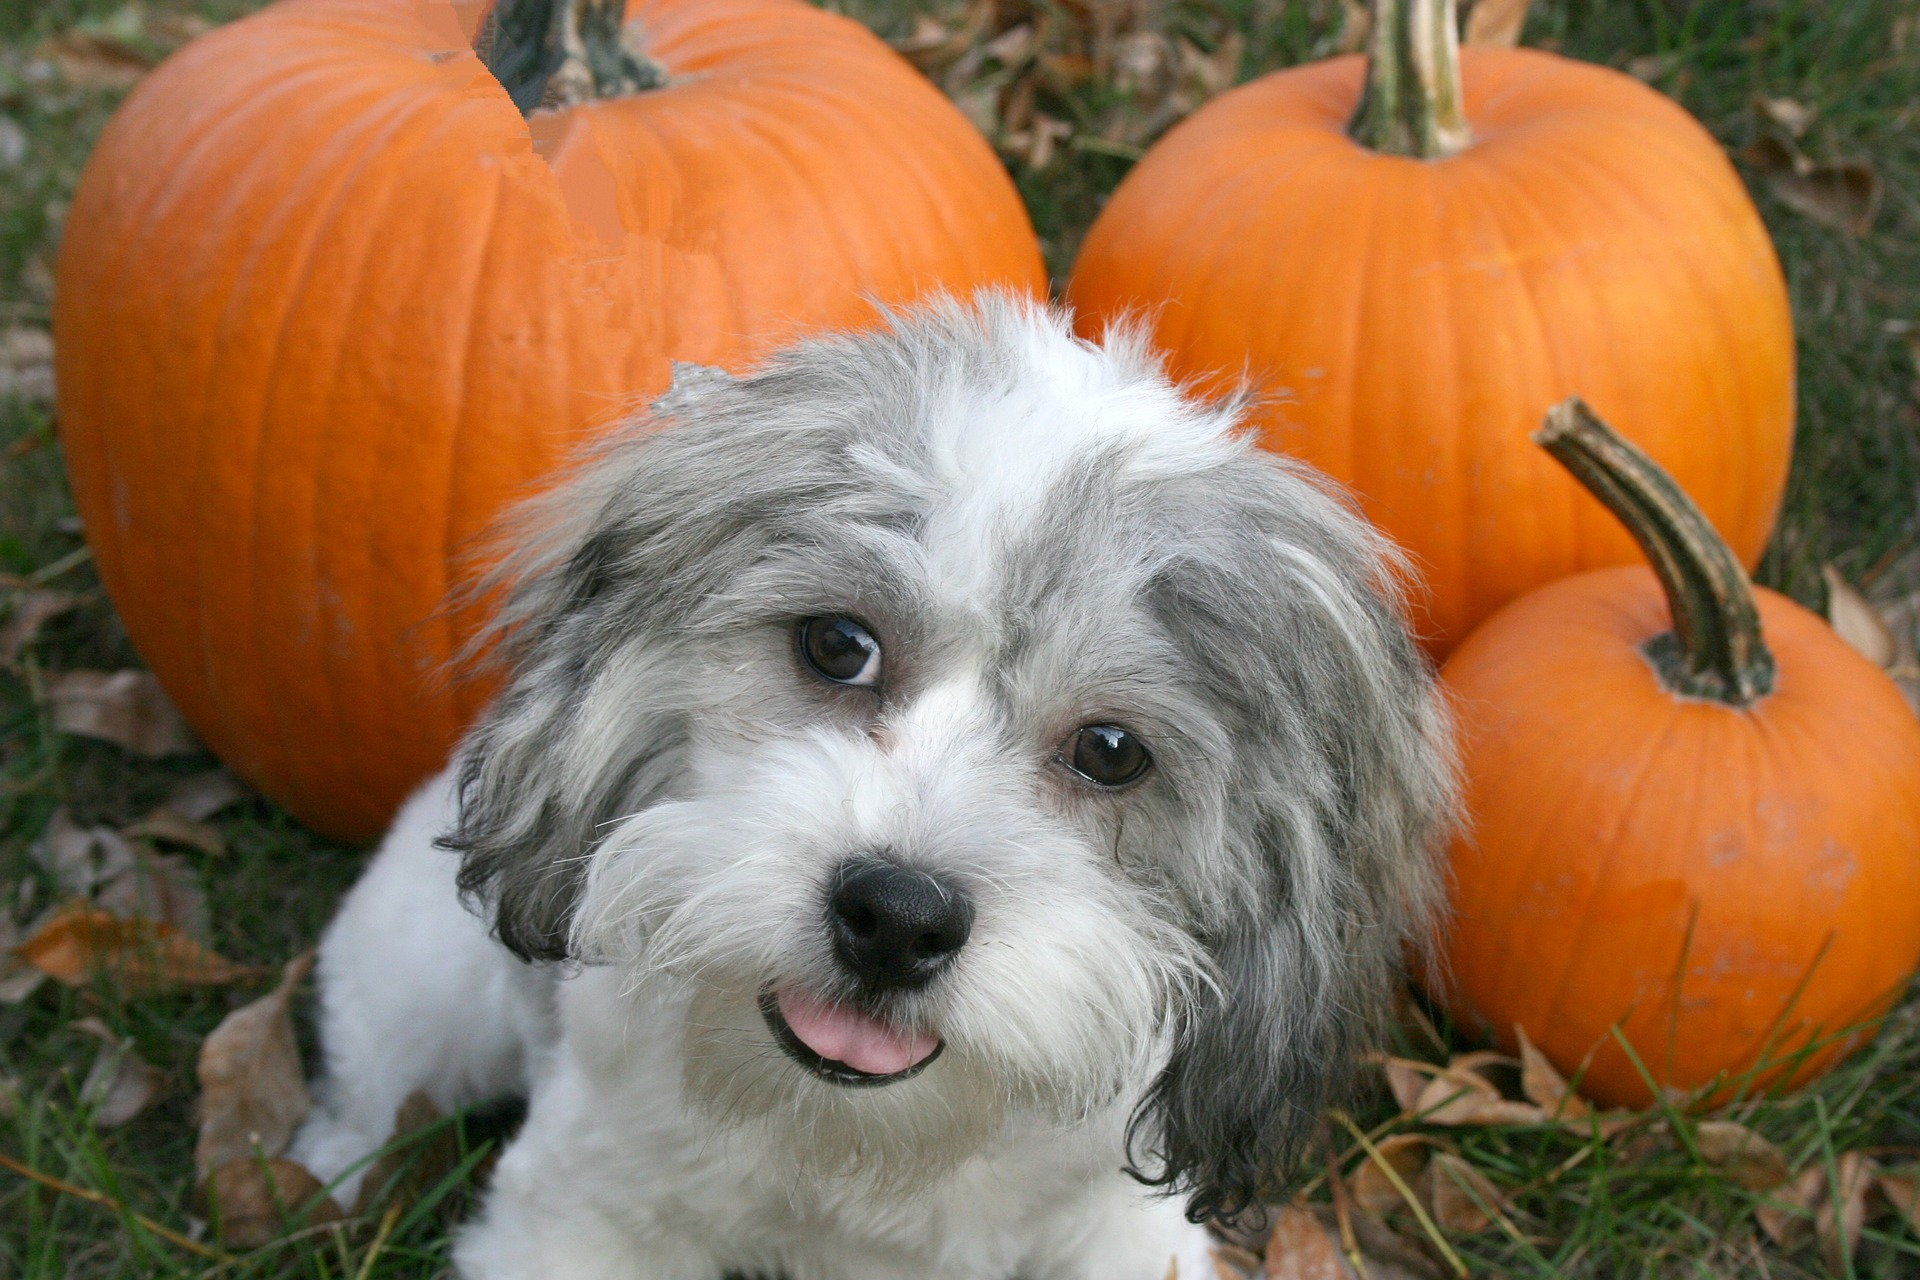 Get Ready For Halloween Trick-or-Treating With Your Dog!